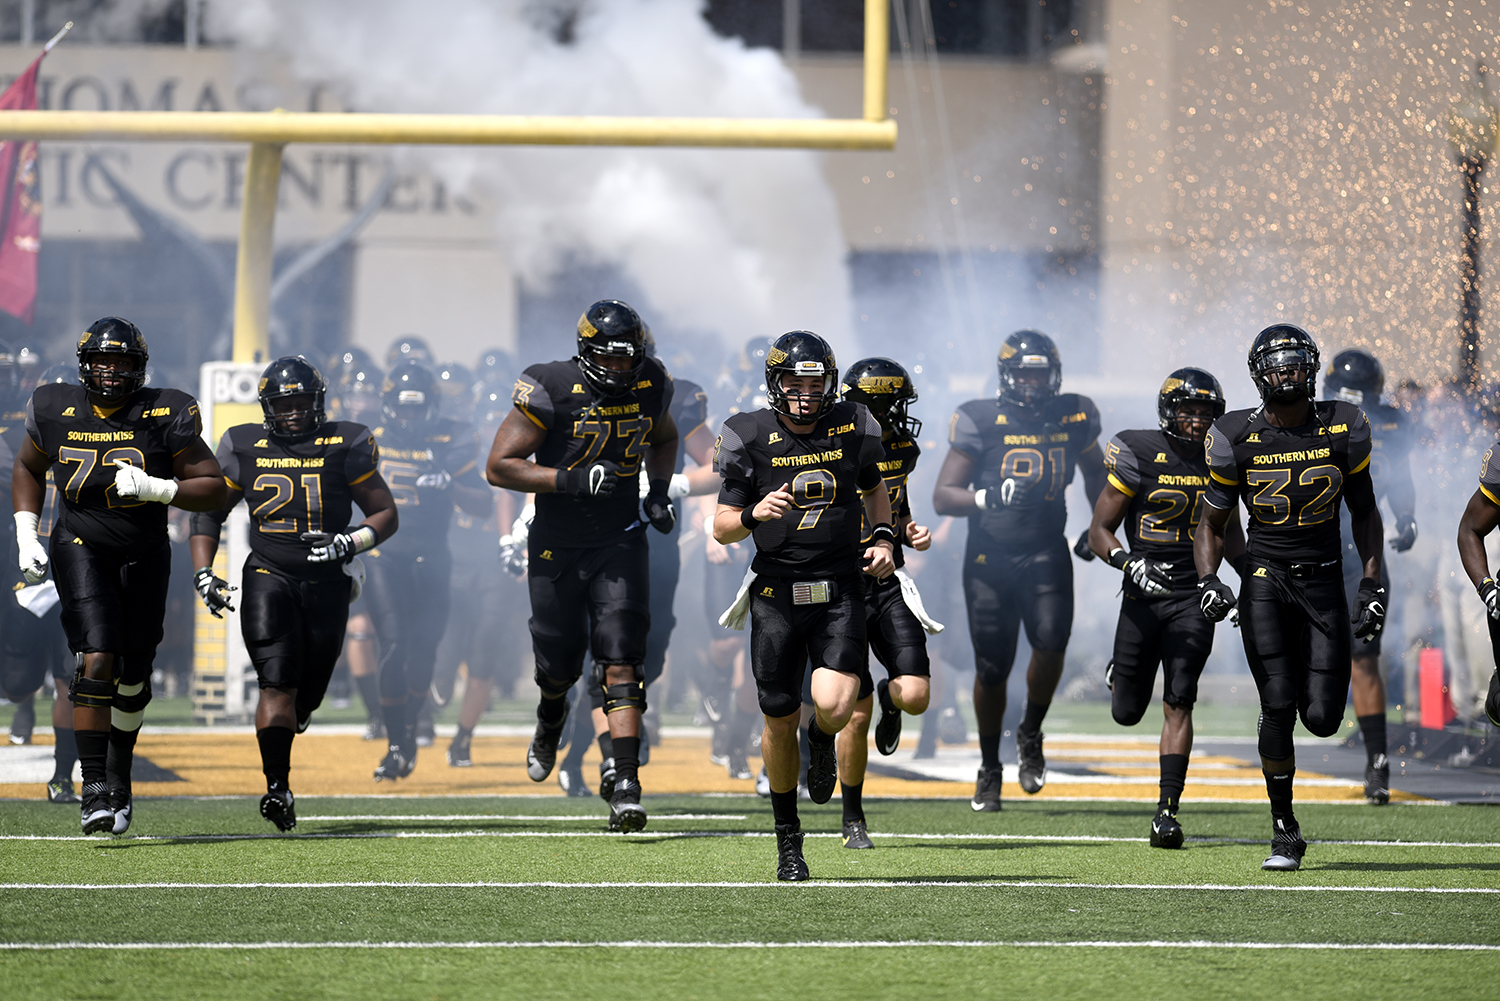 Southern Miss vs. Austin Peay [Sept 12, 2015] Photo Gallery